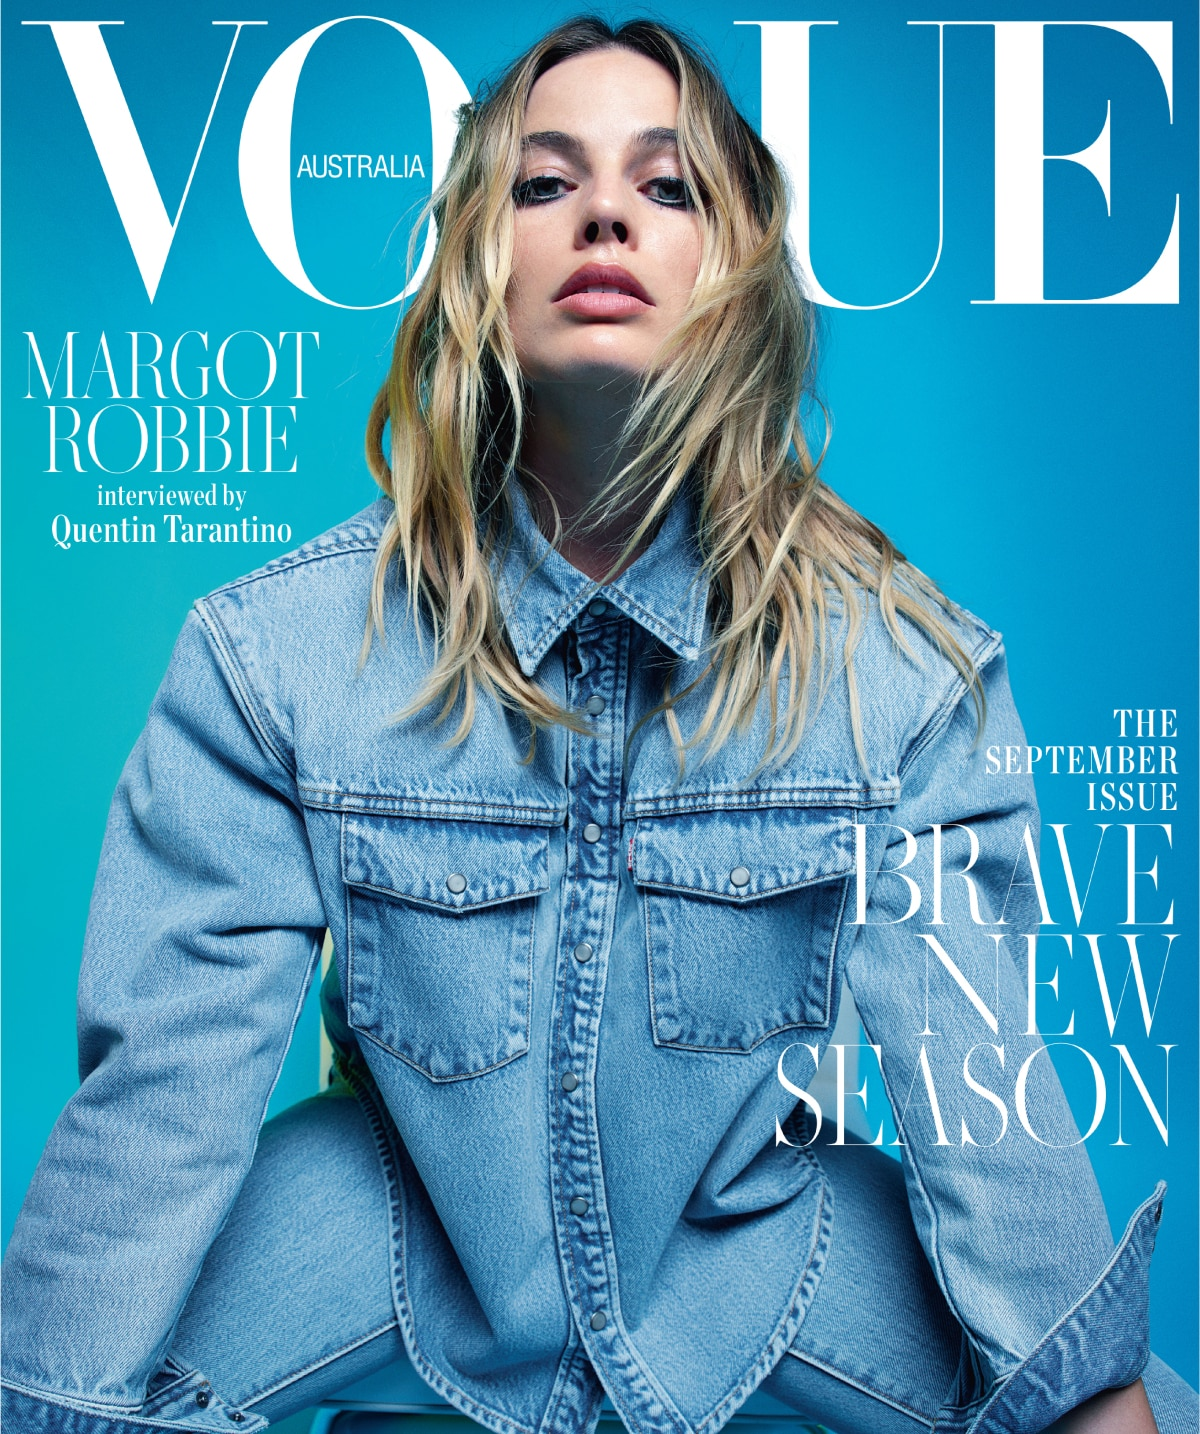 Margot Robbie talks to her mum about Neighbours, growing up on the Gold Coast and making it in Hollywood